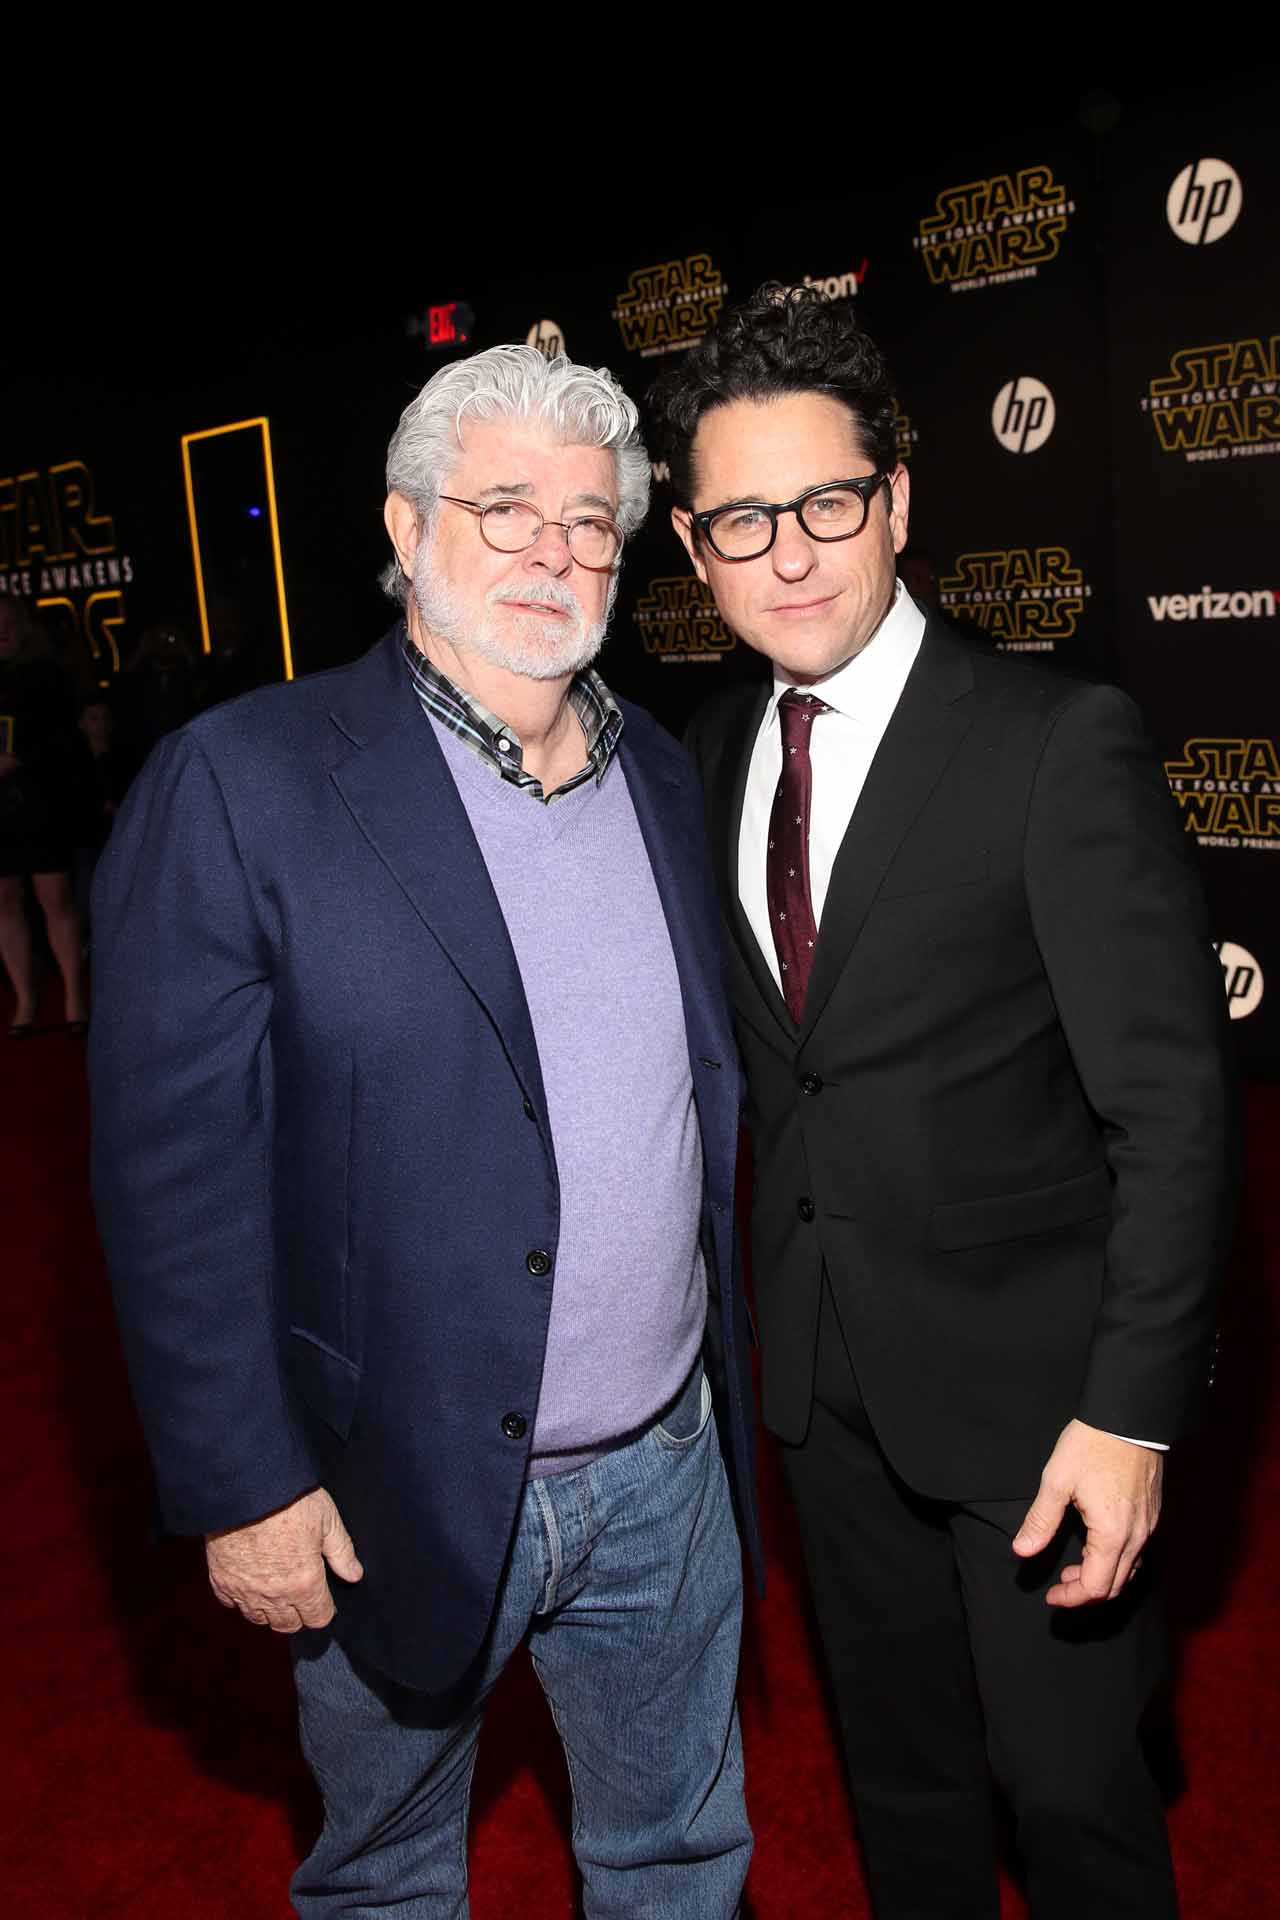 nearly 100 photos from the star wars the force awakens